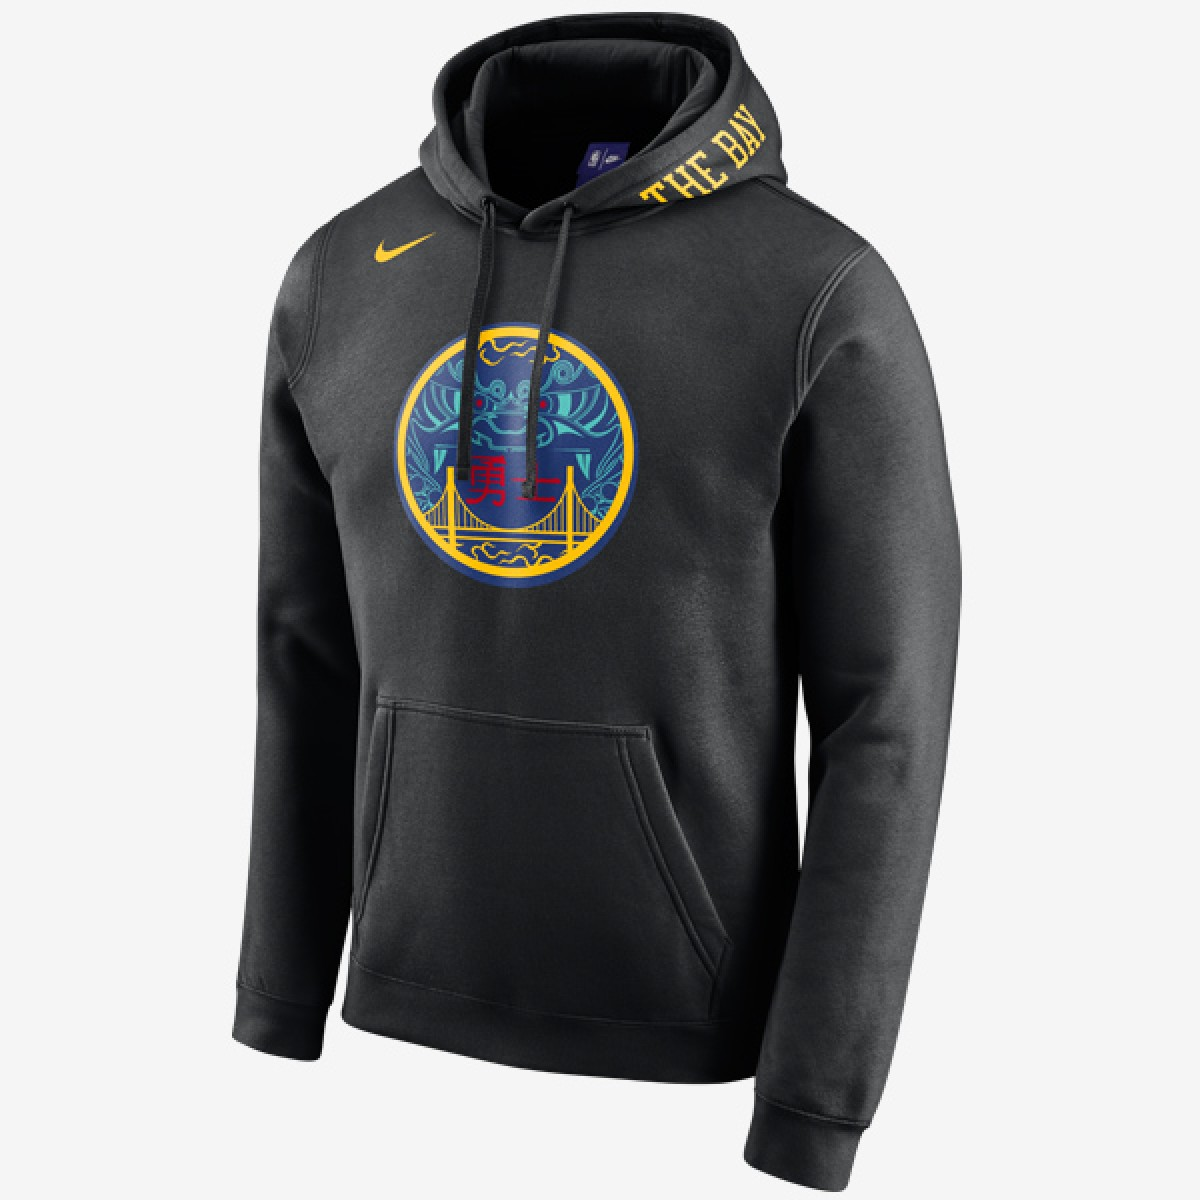 Nike Hoodie Golden State Warriors 'City Edition'